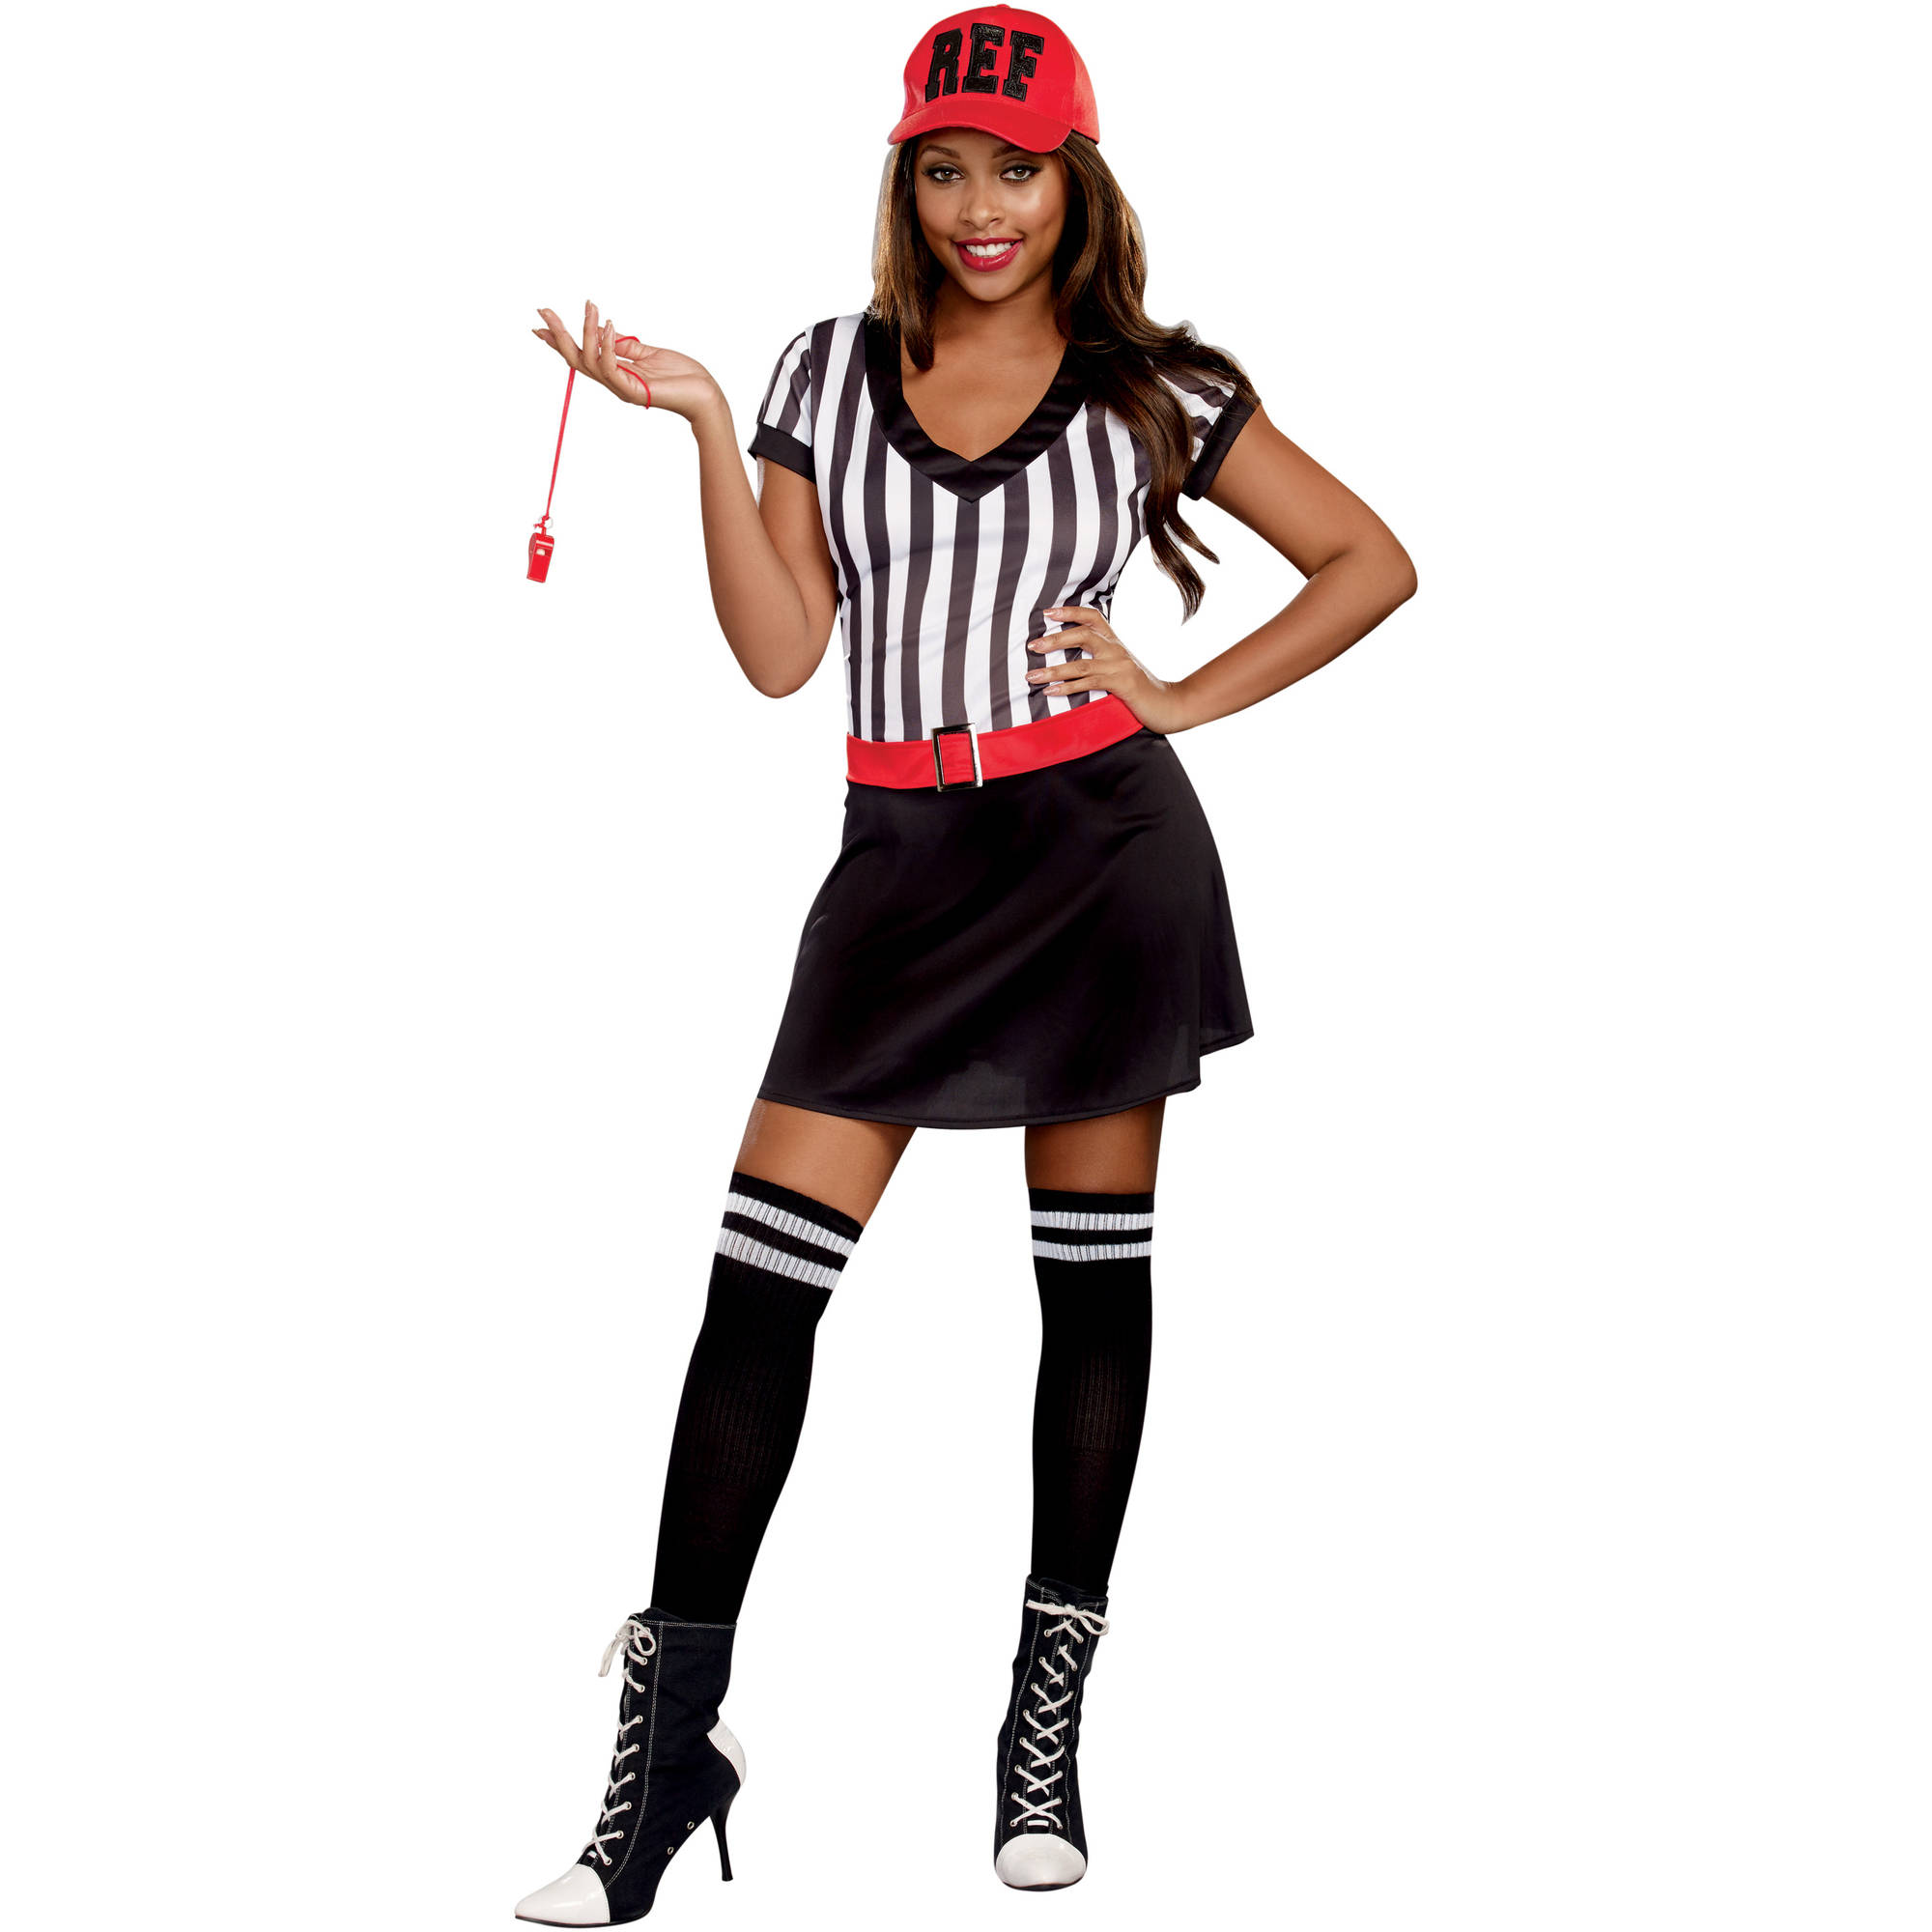 Racy Ref Adult Women's Halloween Costume